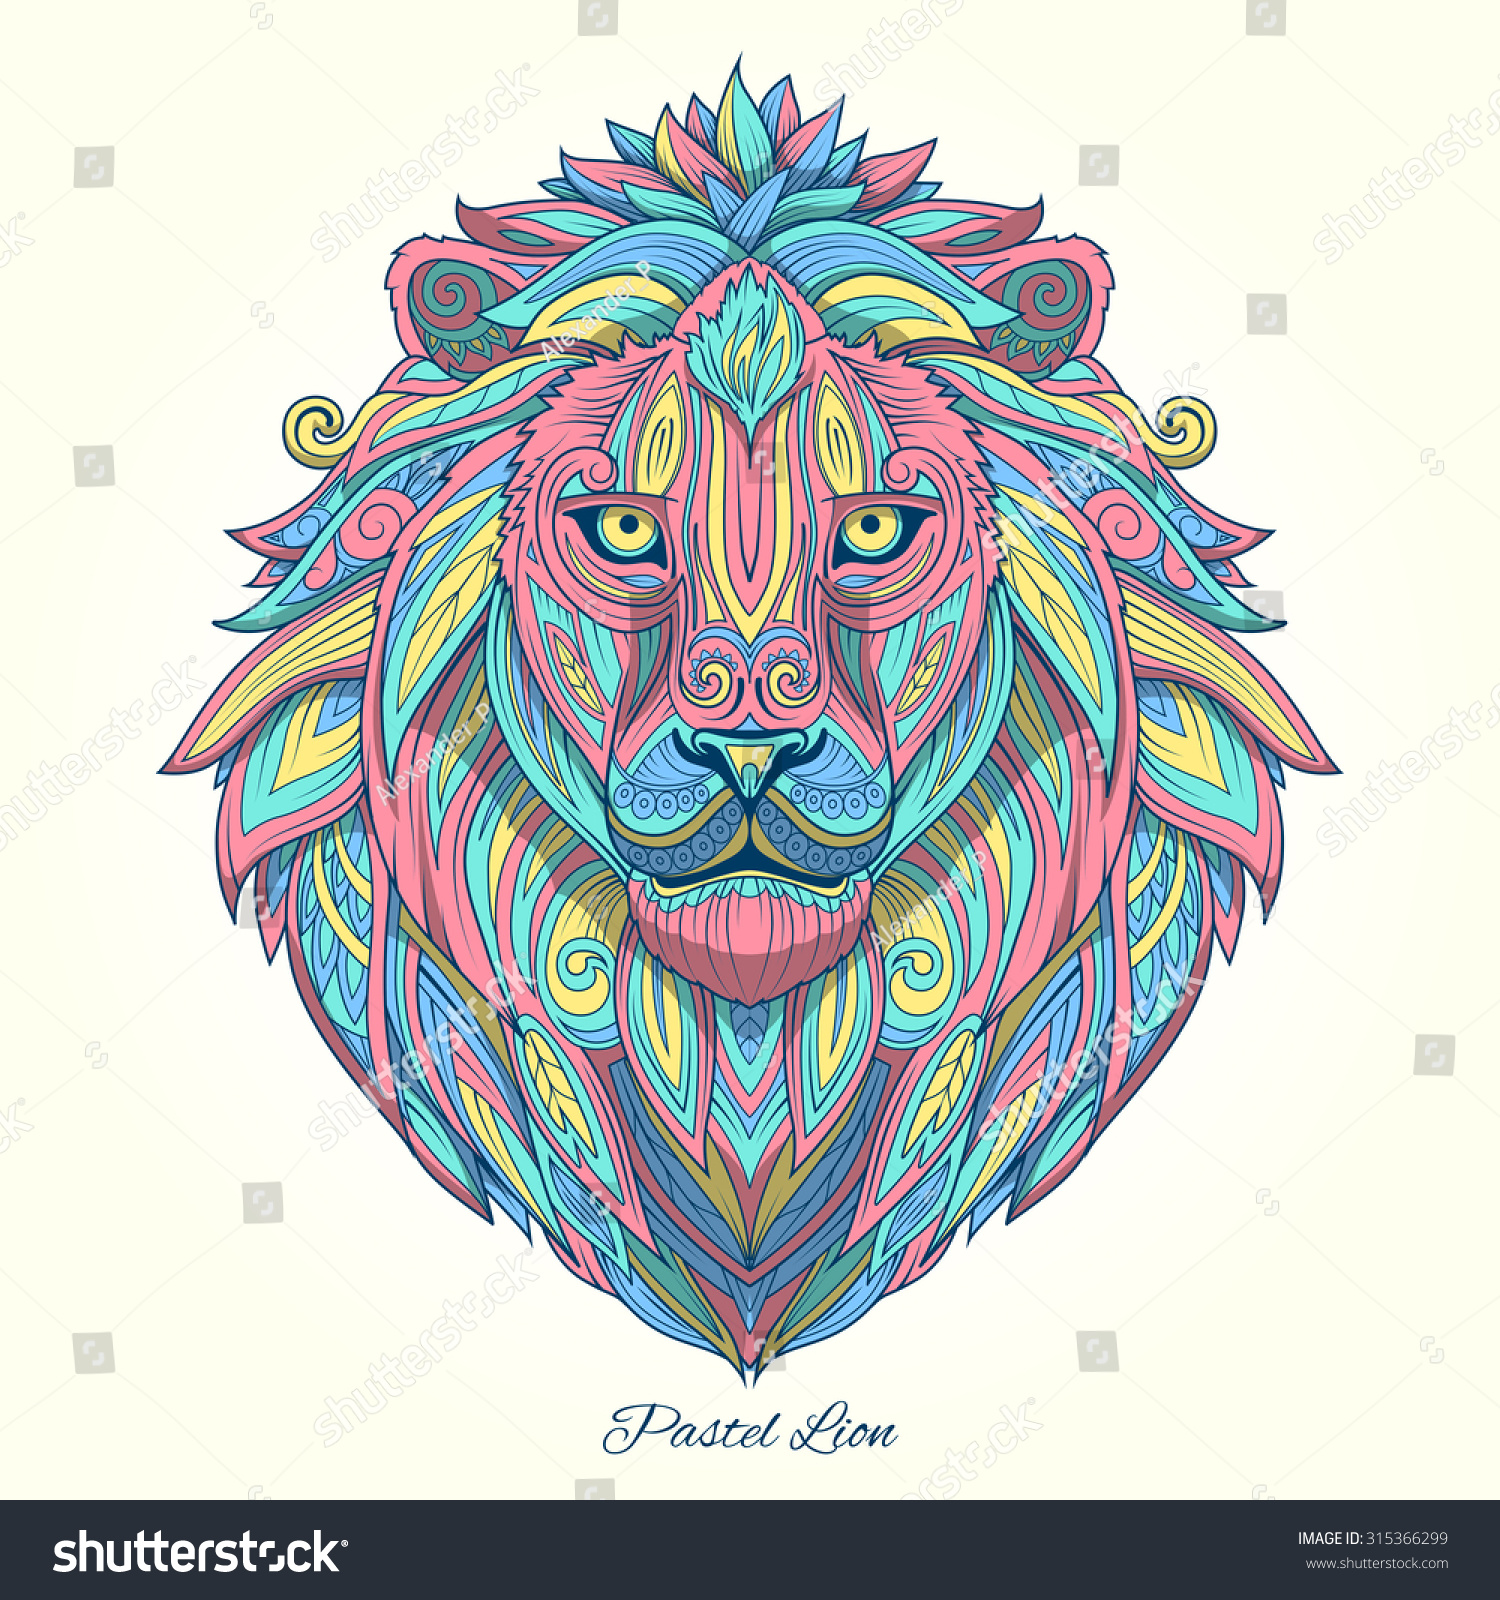 Colourtation anti stress colouring book for adults volume 1 - Color Art Tatto Lion Pastel Color Ornament Ethnic Raster Version Tribal Tattoo Animal Art